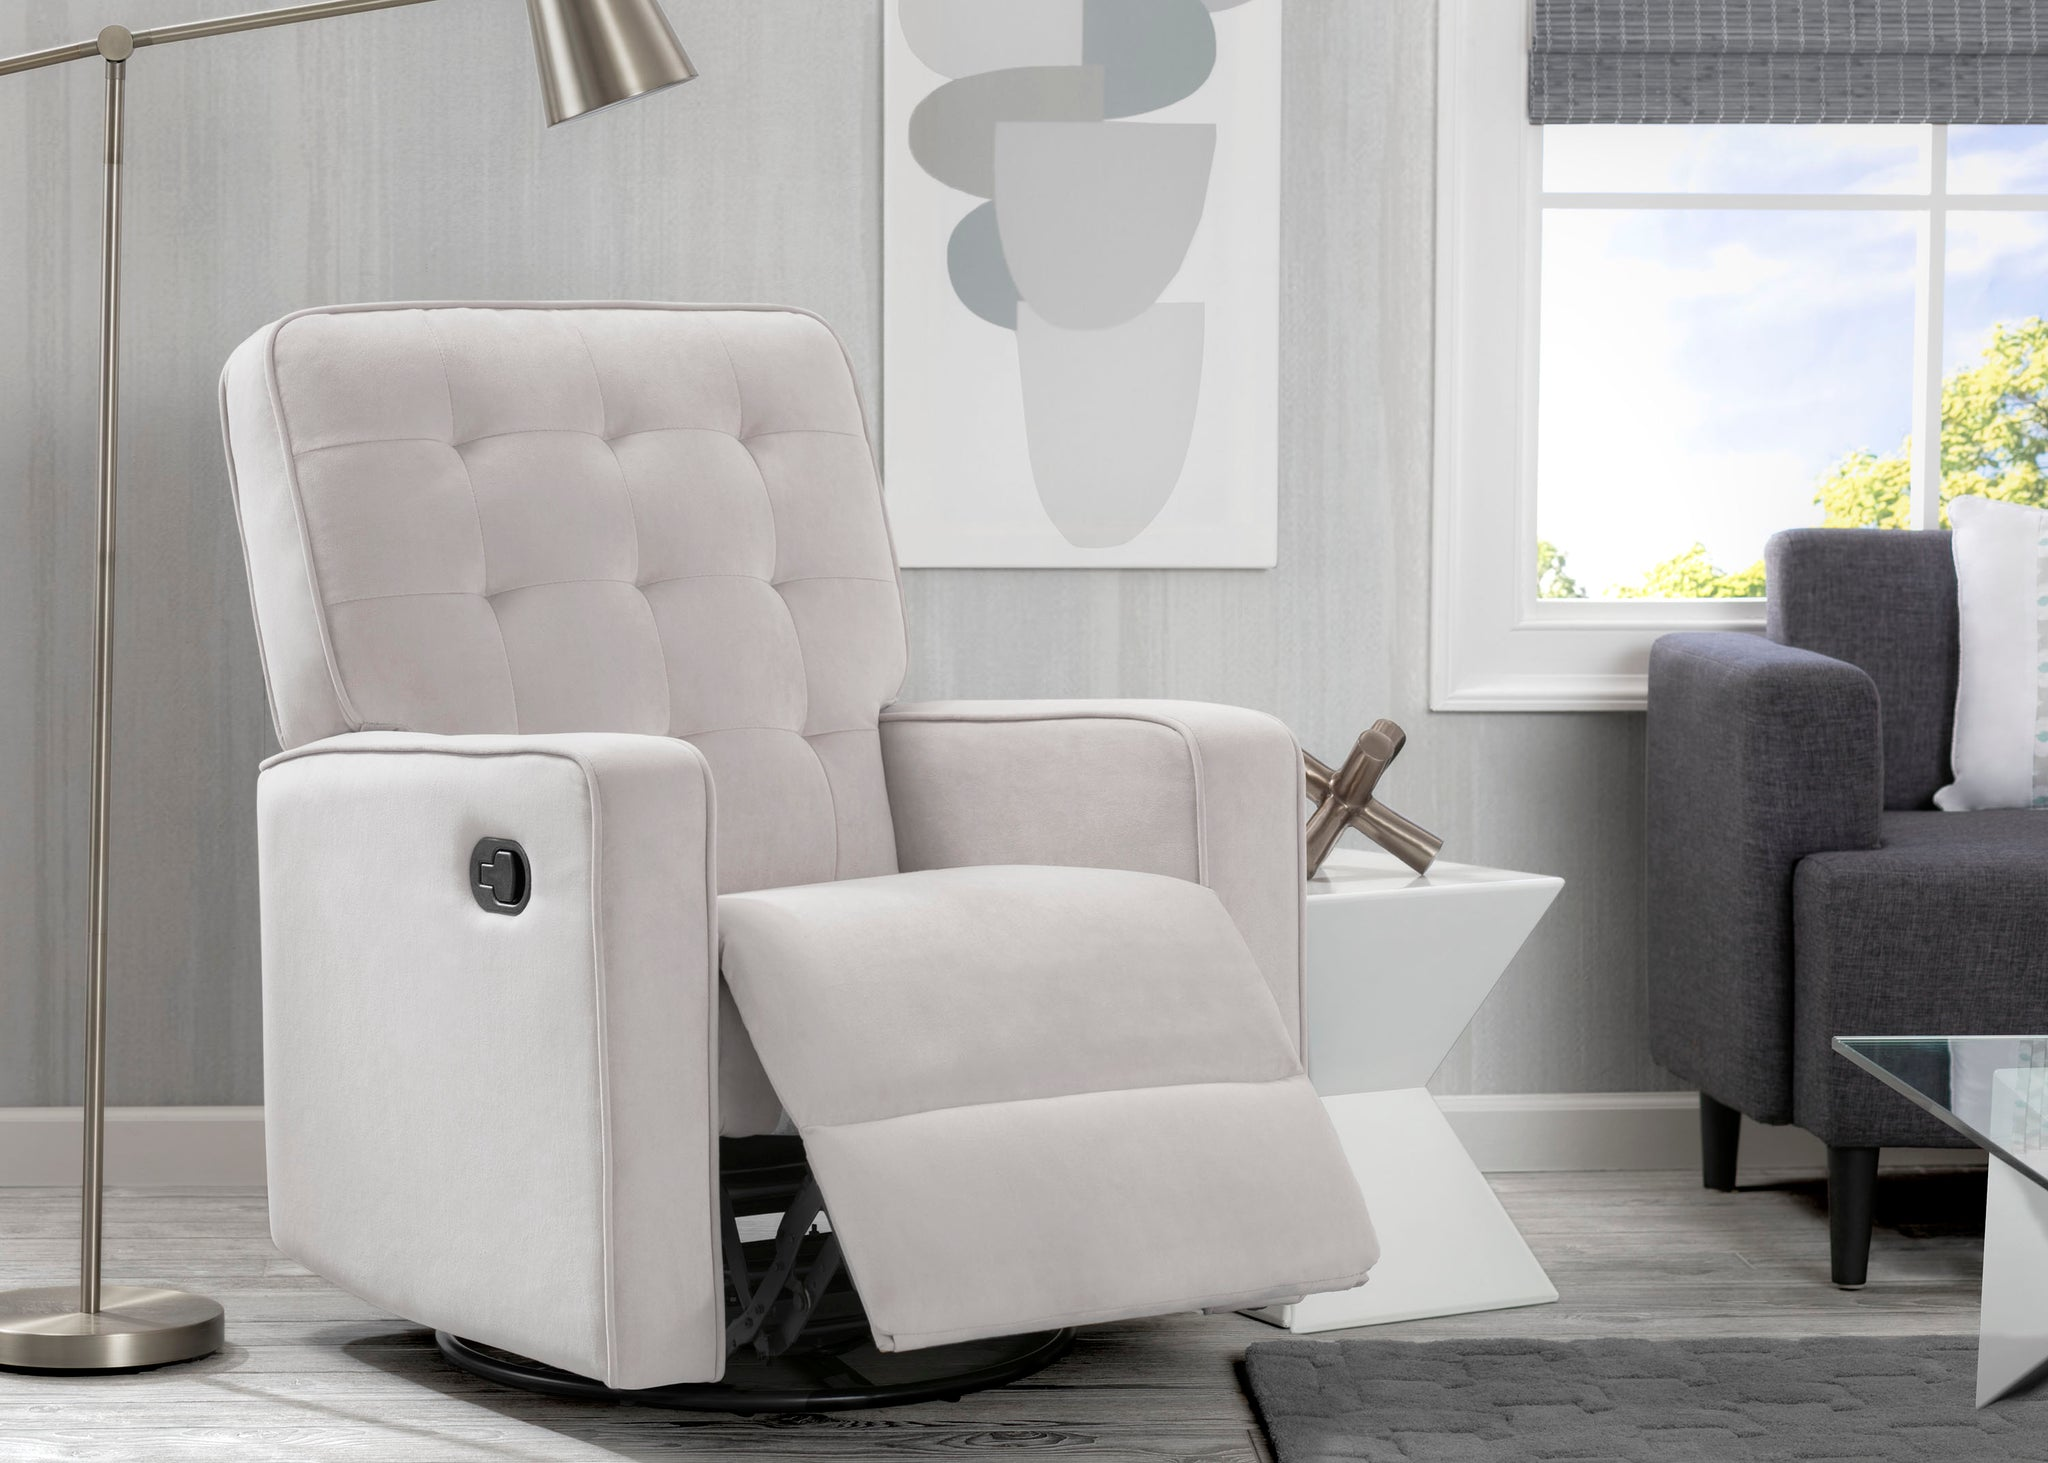 Delta Home Linen (150) Grant Glider Swivel Recliner, Room Reclined View